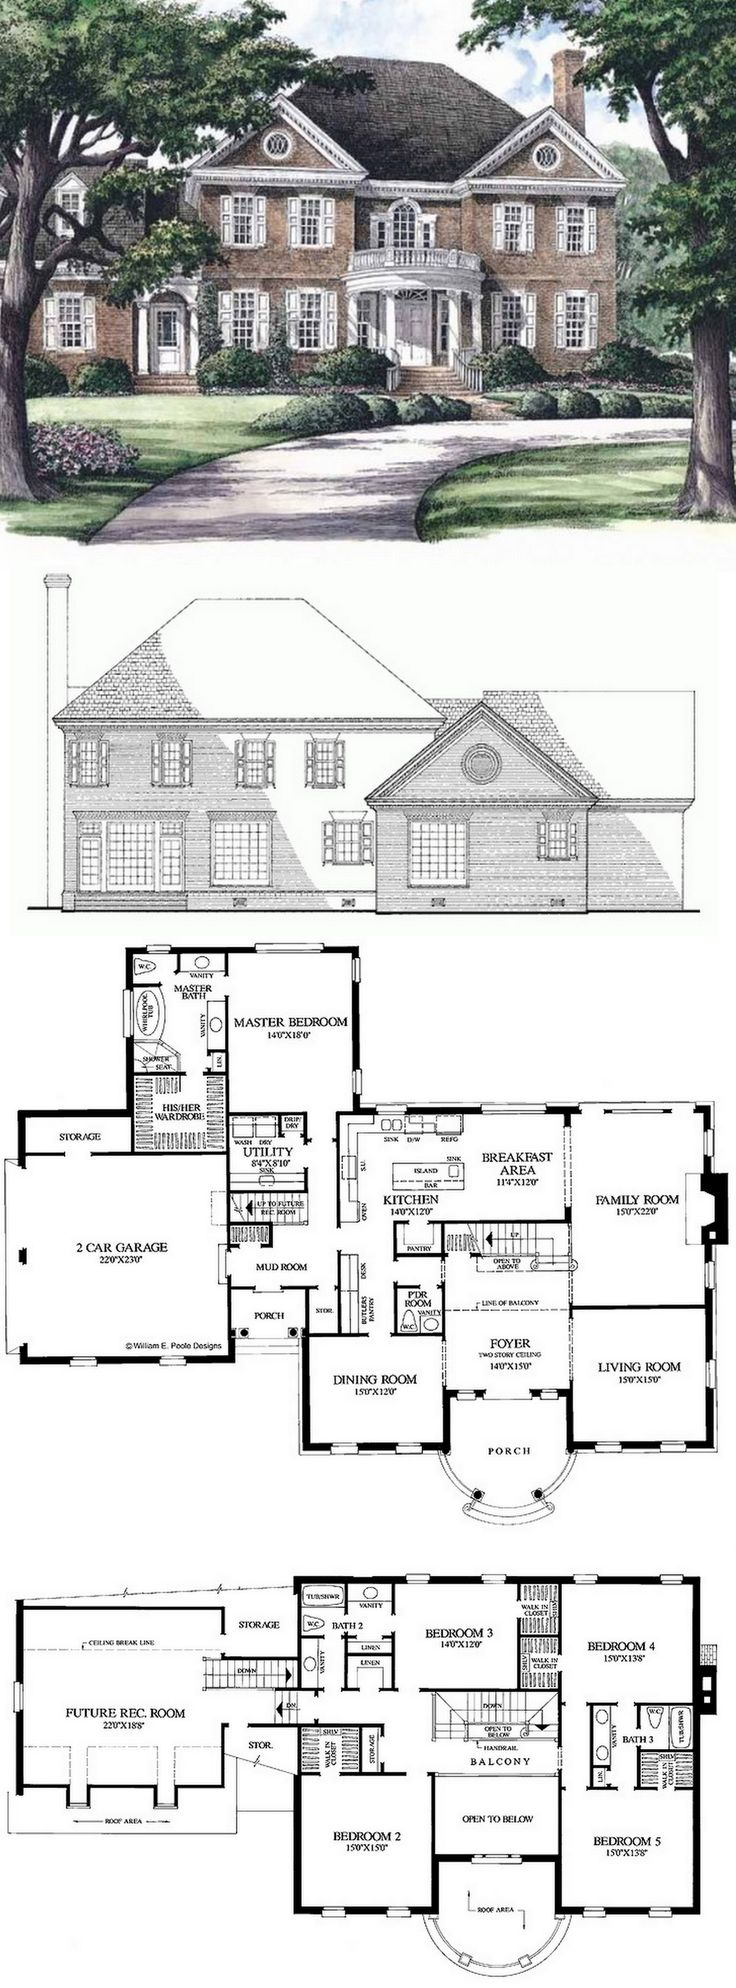 georgian house plan with 3951 square feet and 5 bedrooms from dream home source house